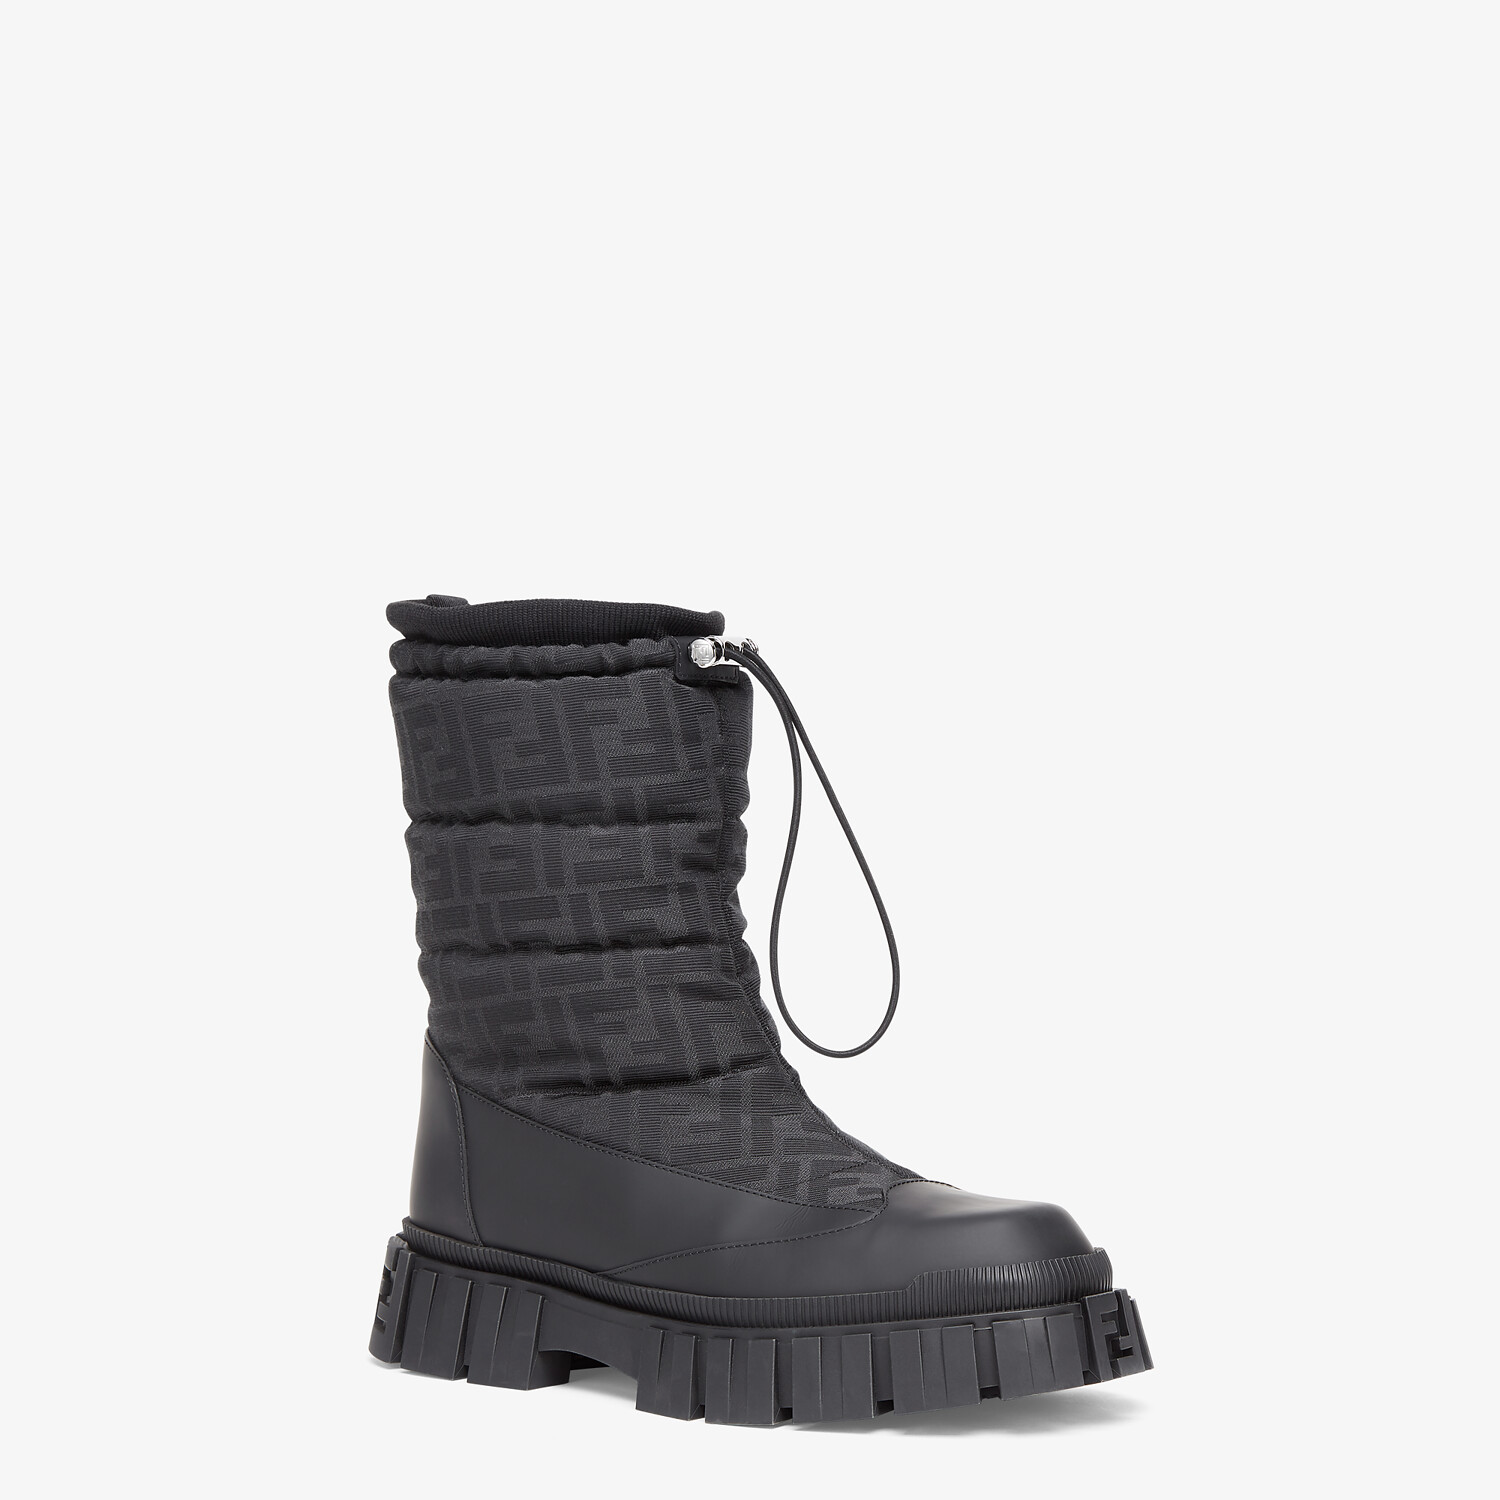 FENDI ANKLE BOOTS - Black leather boots - view 2 detail